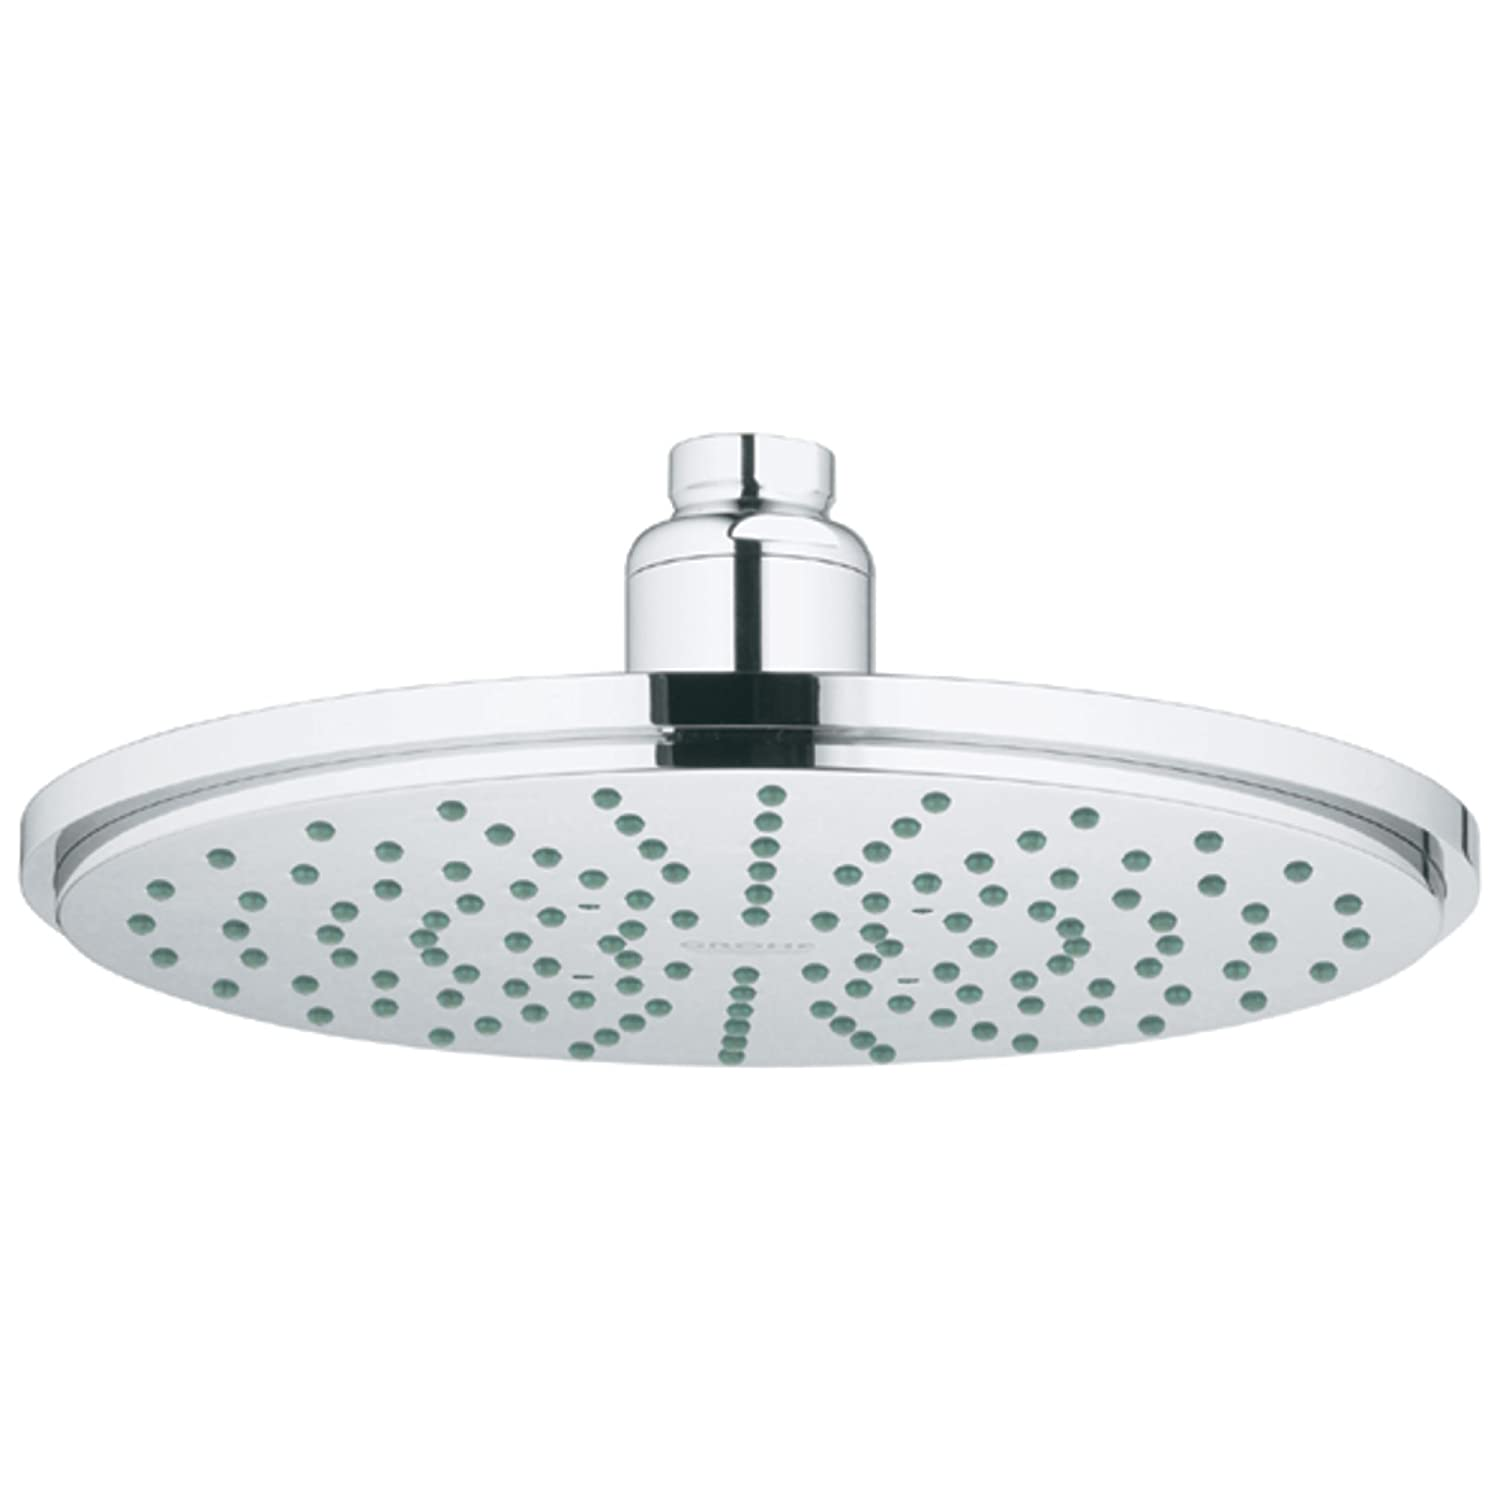 Rainshower Cosmopolitan 210 1-Spray Showerhead - Fixed Showerheads ...